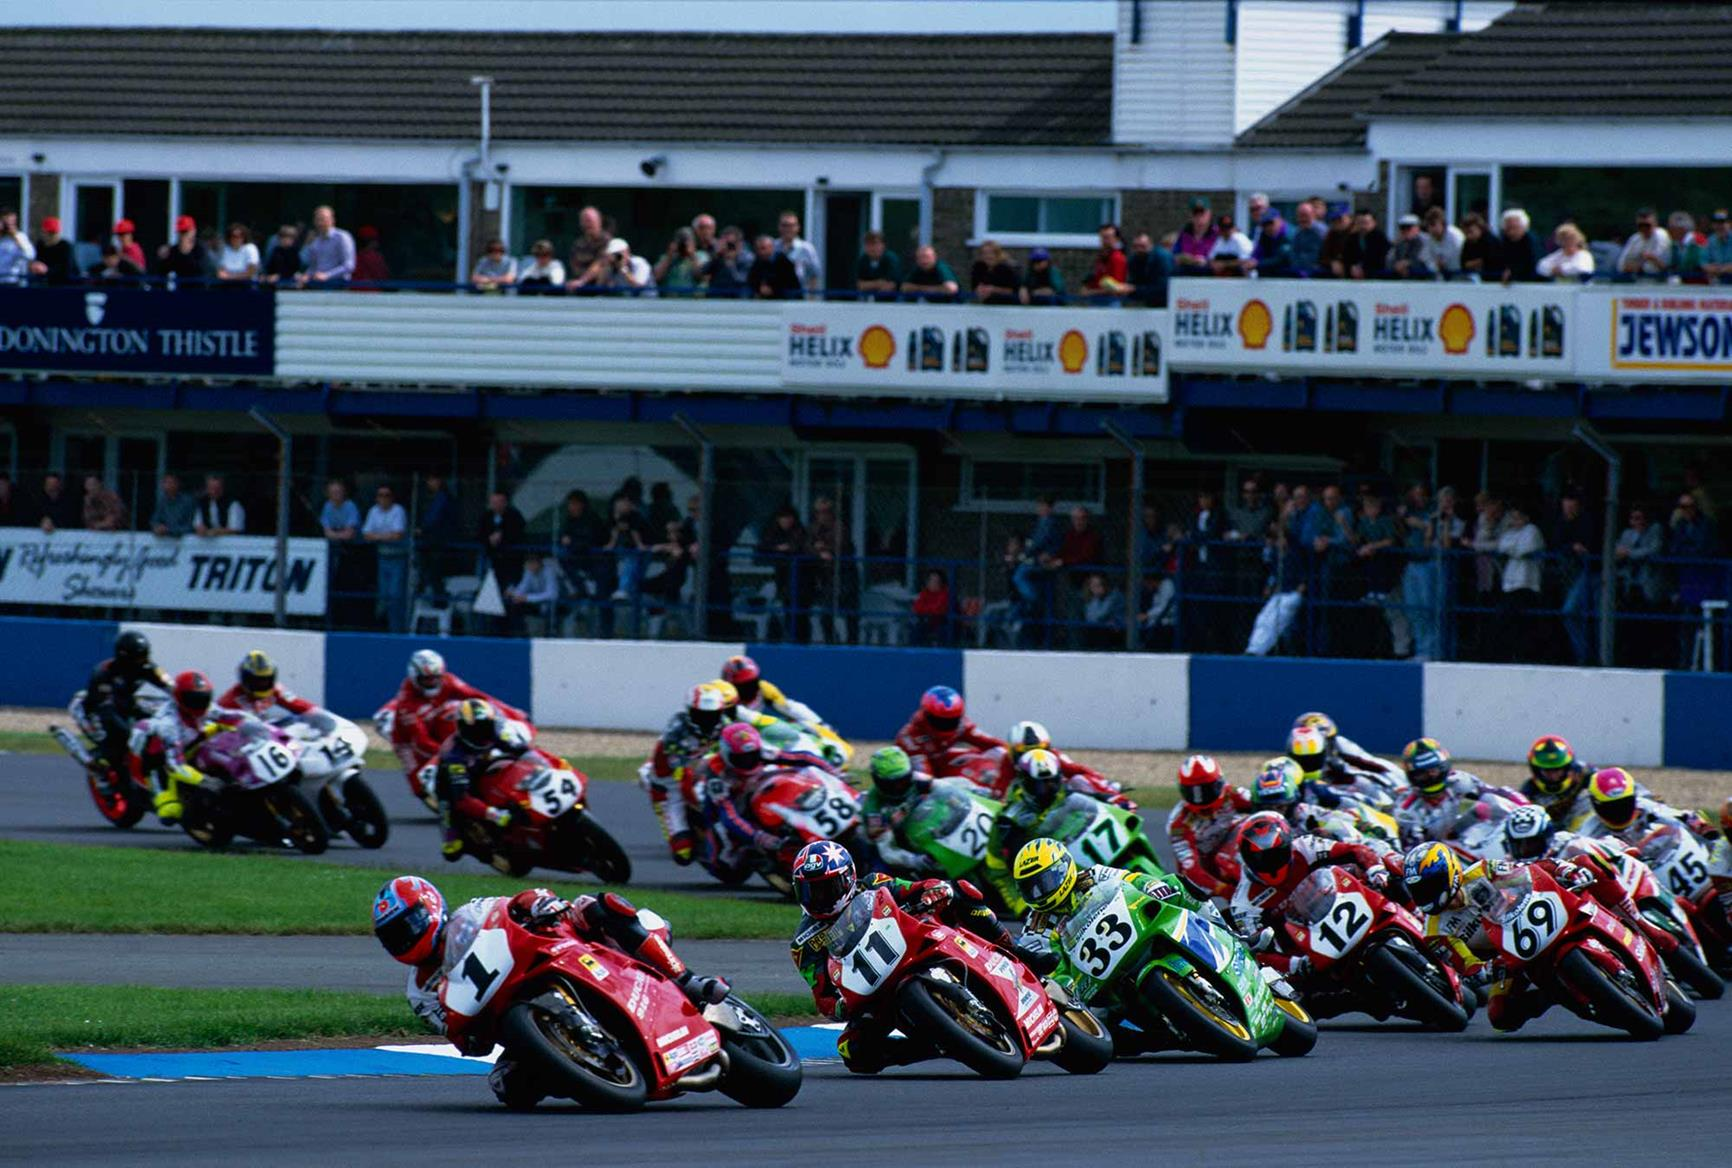 World Superbikes at Donington Park in 1995